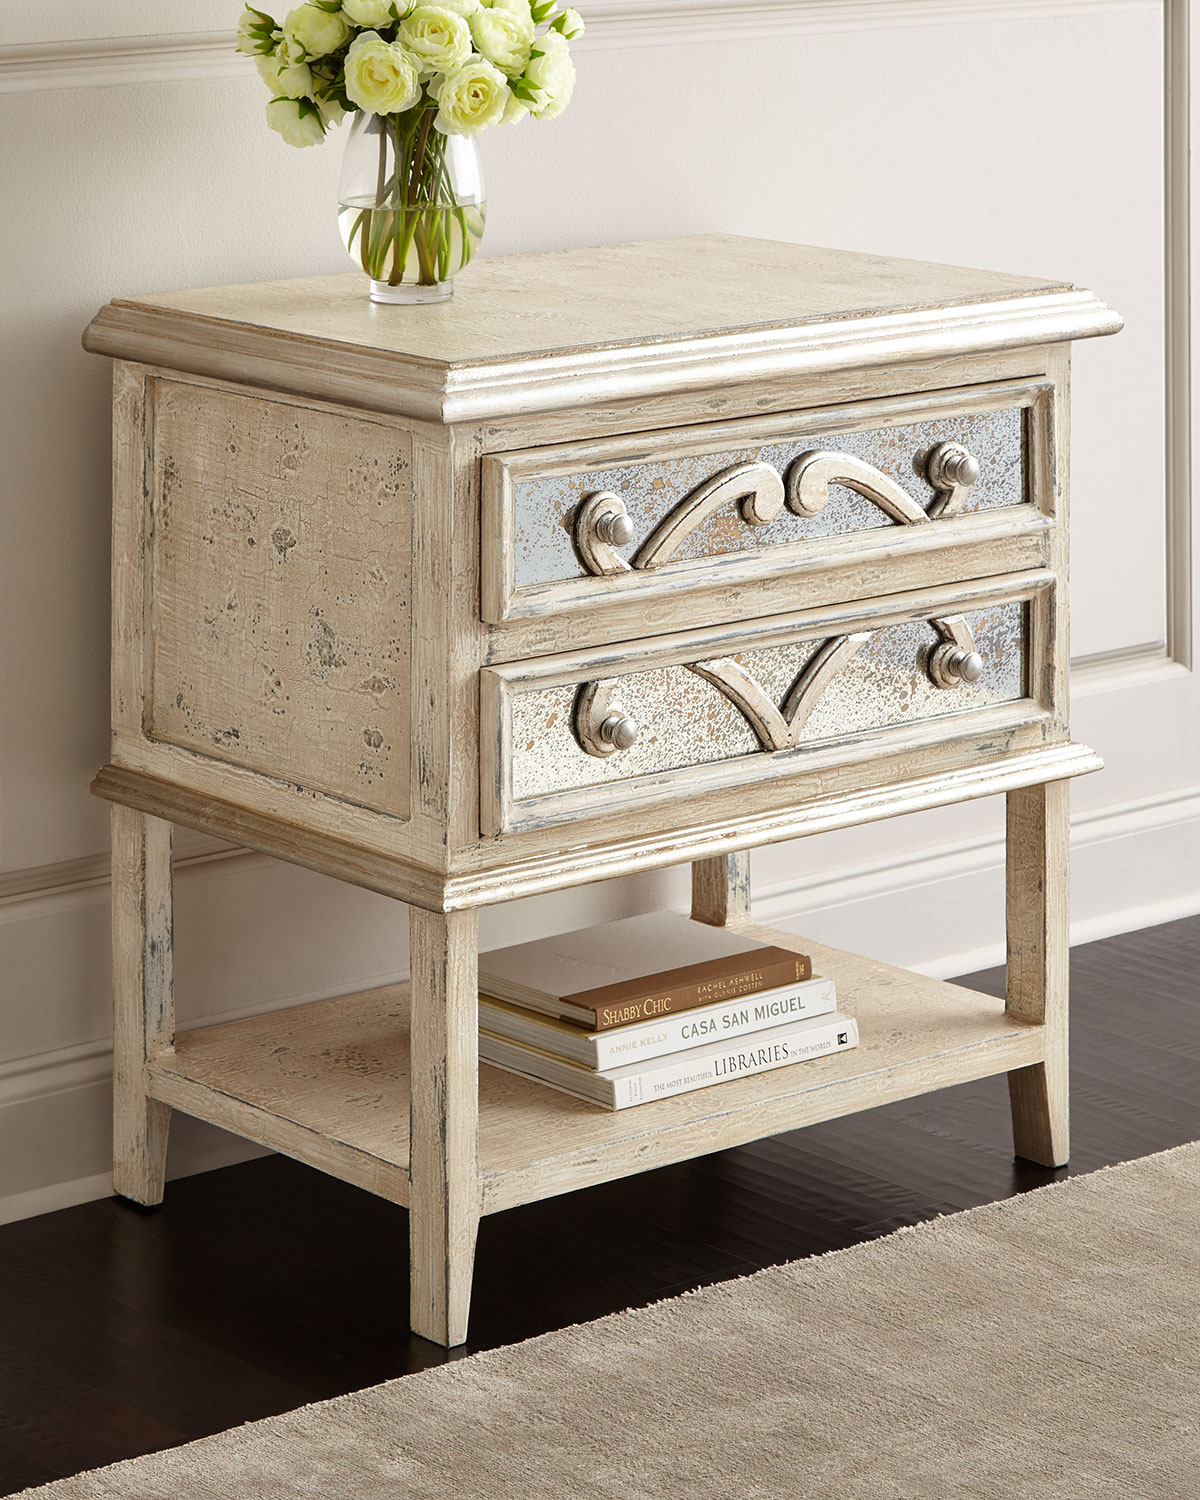 lynley mirrored accent nightstand neiman marcus table with drawer vanity chair target rustic living room end tables inch deep chest drawers tray top side wicker patio furniture